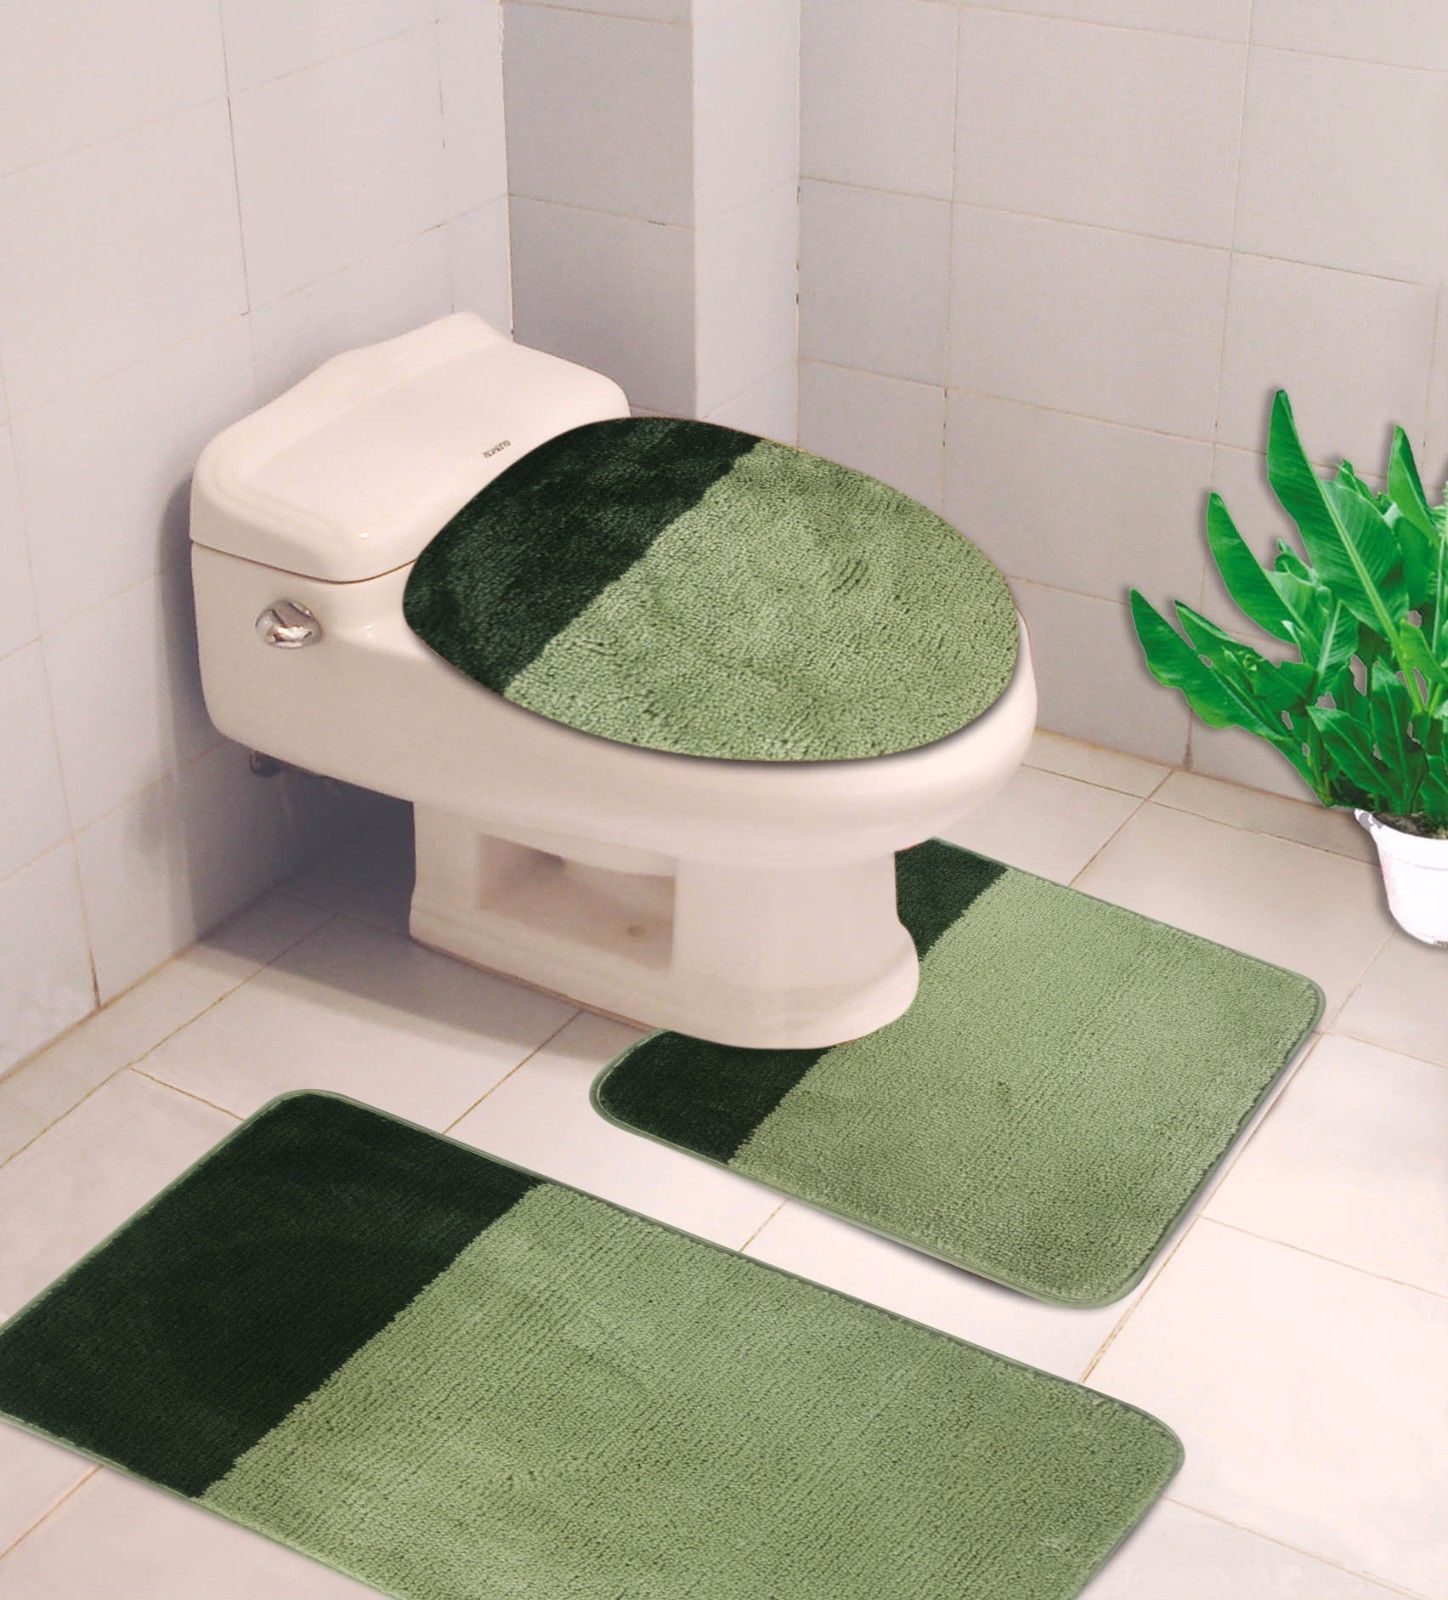 "3-PC (#7) 2 Tone Sage/Hunter Green HIGH QUALITY Jacquard Bathroom Bath Rug Set Washable Anti Slip Rug 18""x28"", Contour Mat 18""x18"" and Toilet Seat Lid Cover 18""x19"" with Non-Skid Rubber Back"